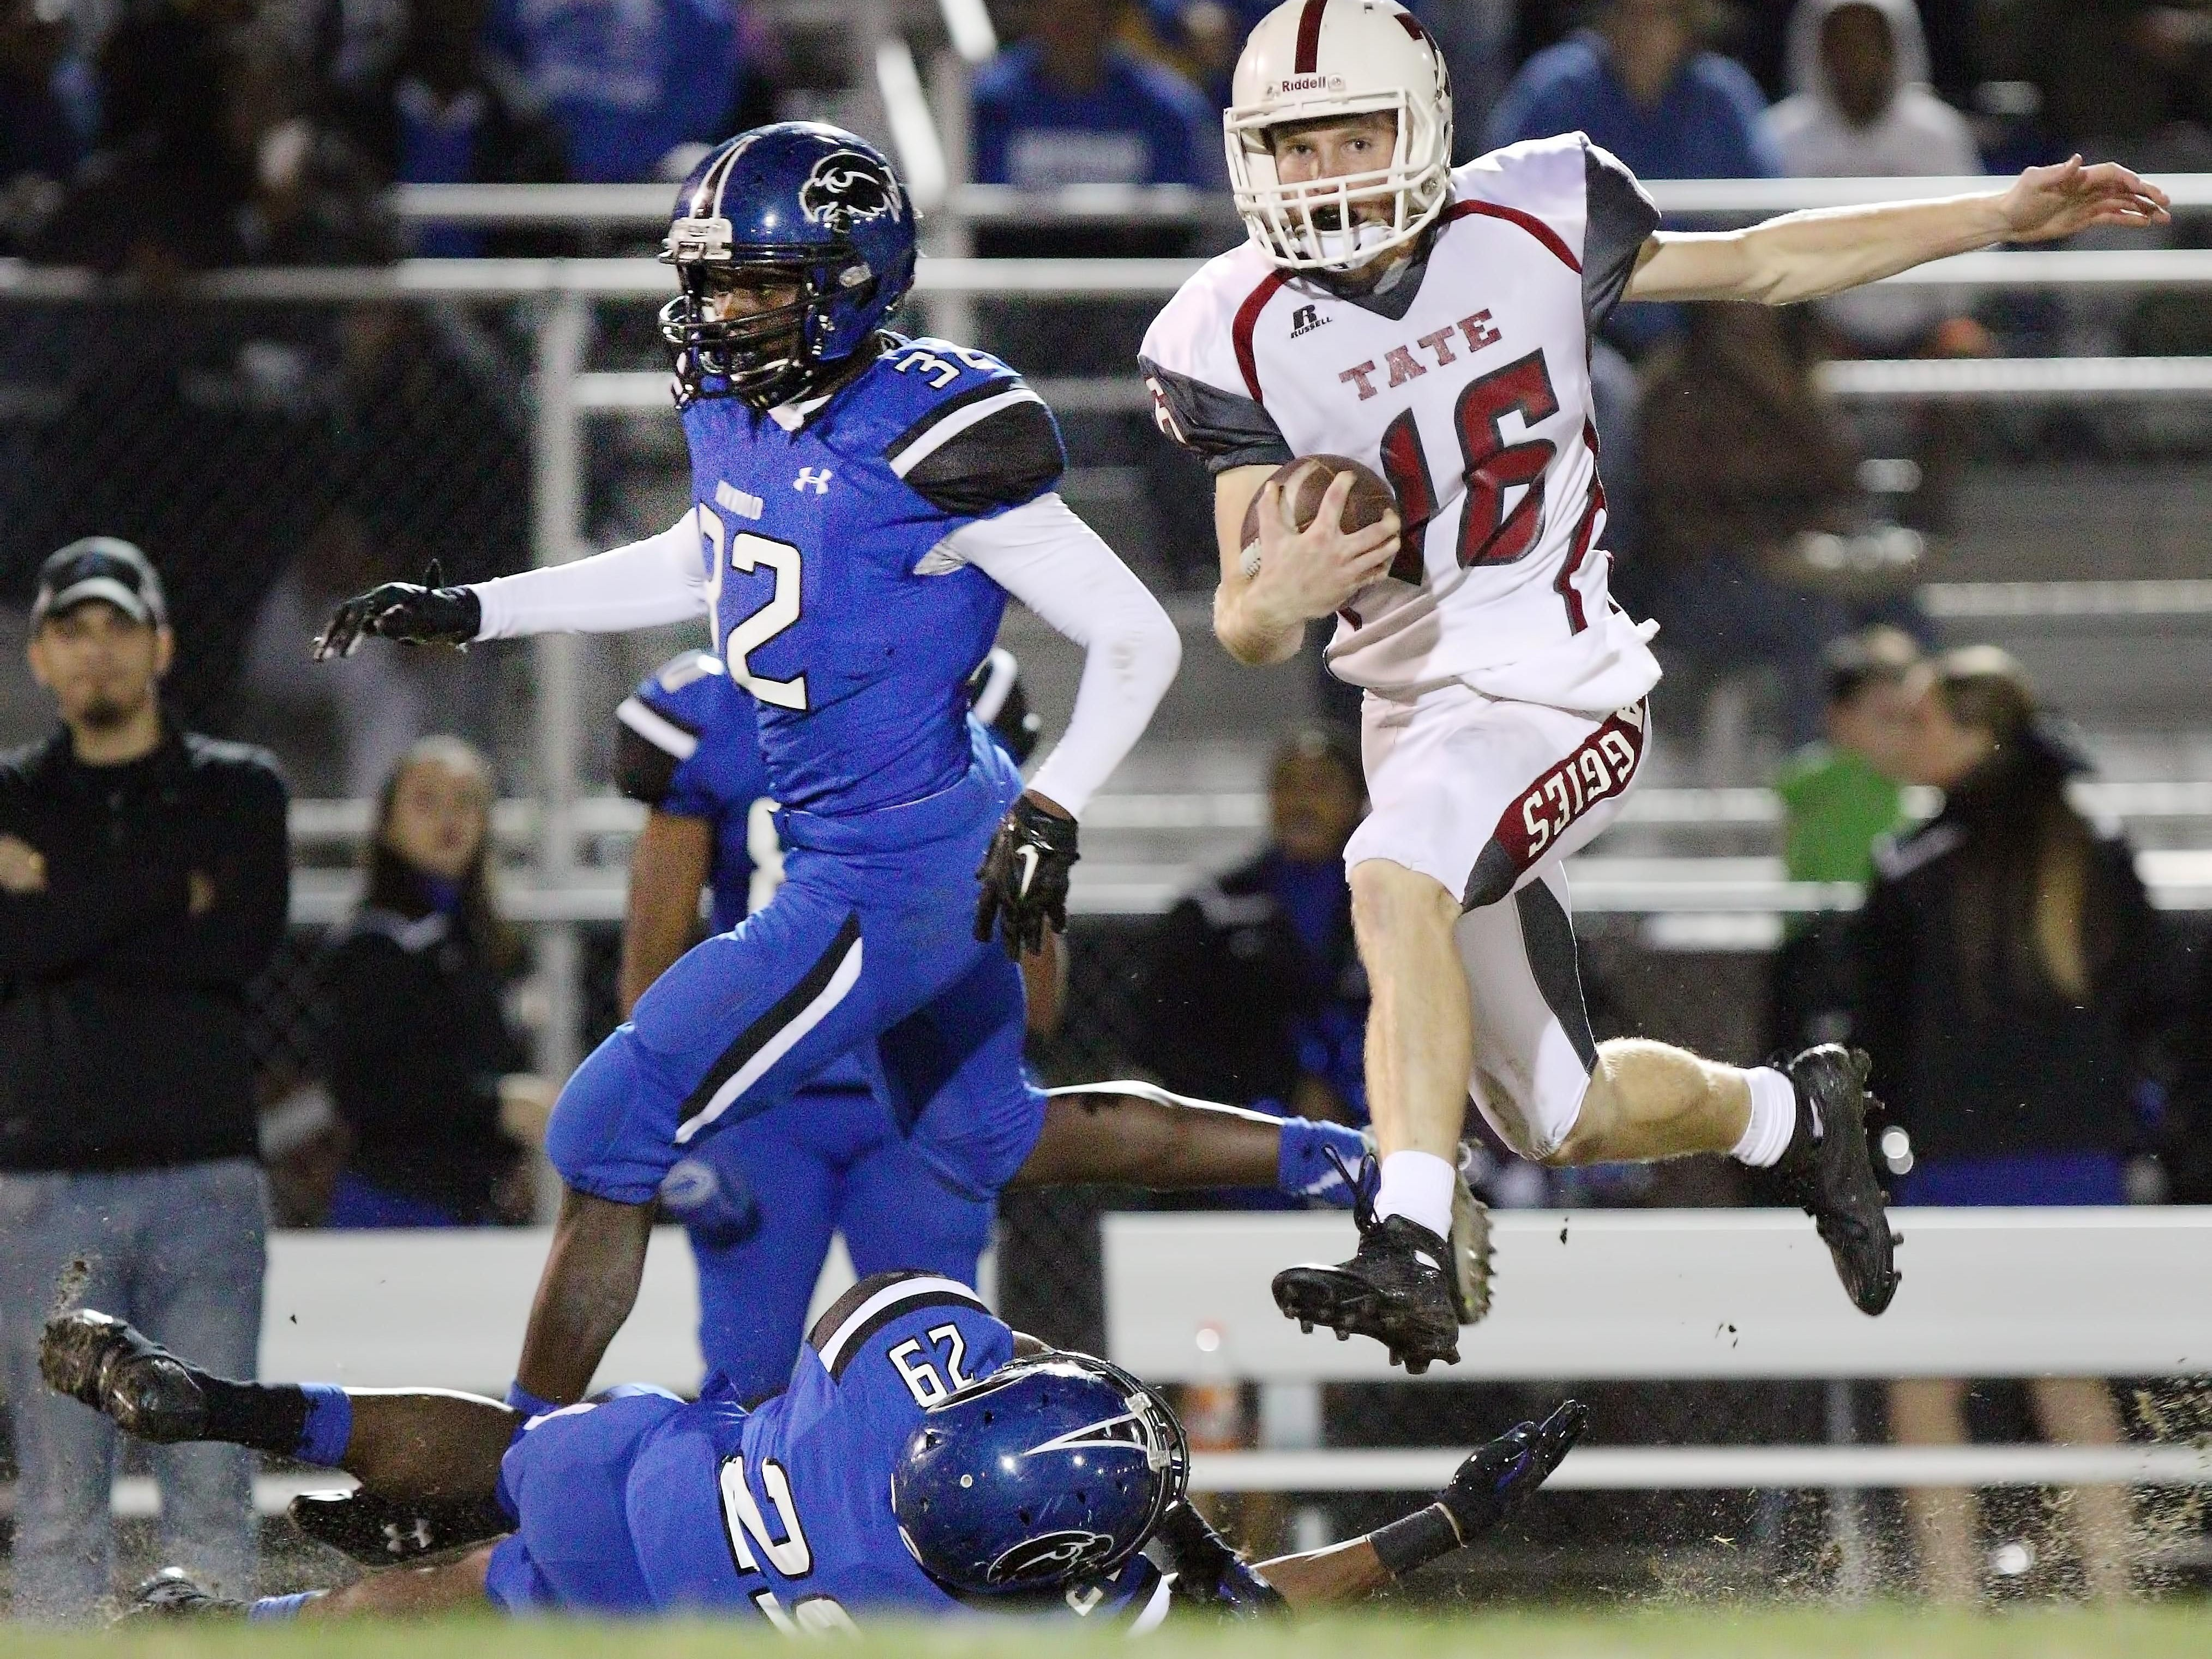 SEFFNER, FL. 12/4/2015 -- Tate receiver Jake Henry hurdles over Armwood defensive back Deon Morgan for one of the Aggies' few long gains in Friday's Class 6A state semifinal game at Lyle Flagg Field. The Aggies fell to the Hawks 53-19. Photo by BILL WARD/PNJ